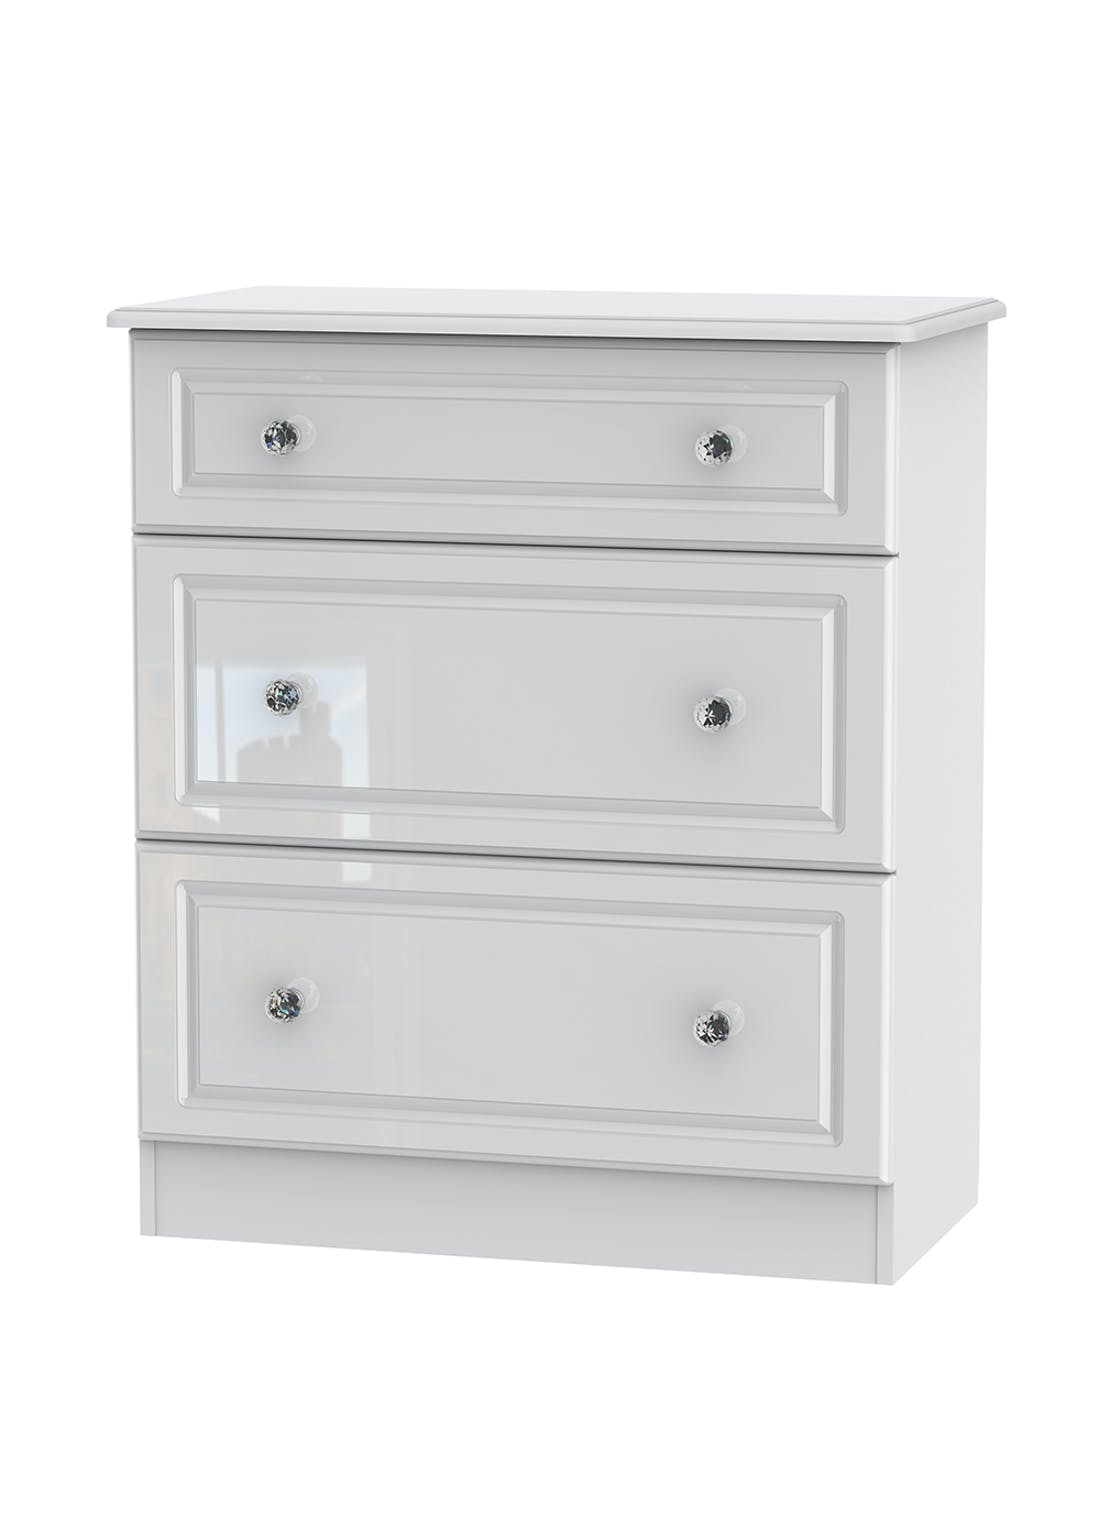 Swift Marlborough 3 Drawer Deep Chest (88.5cm x 76.5cm x 41.5cm)